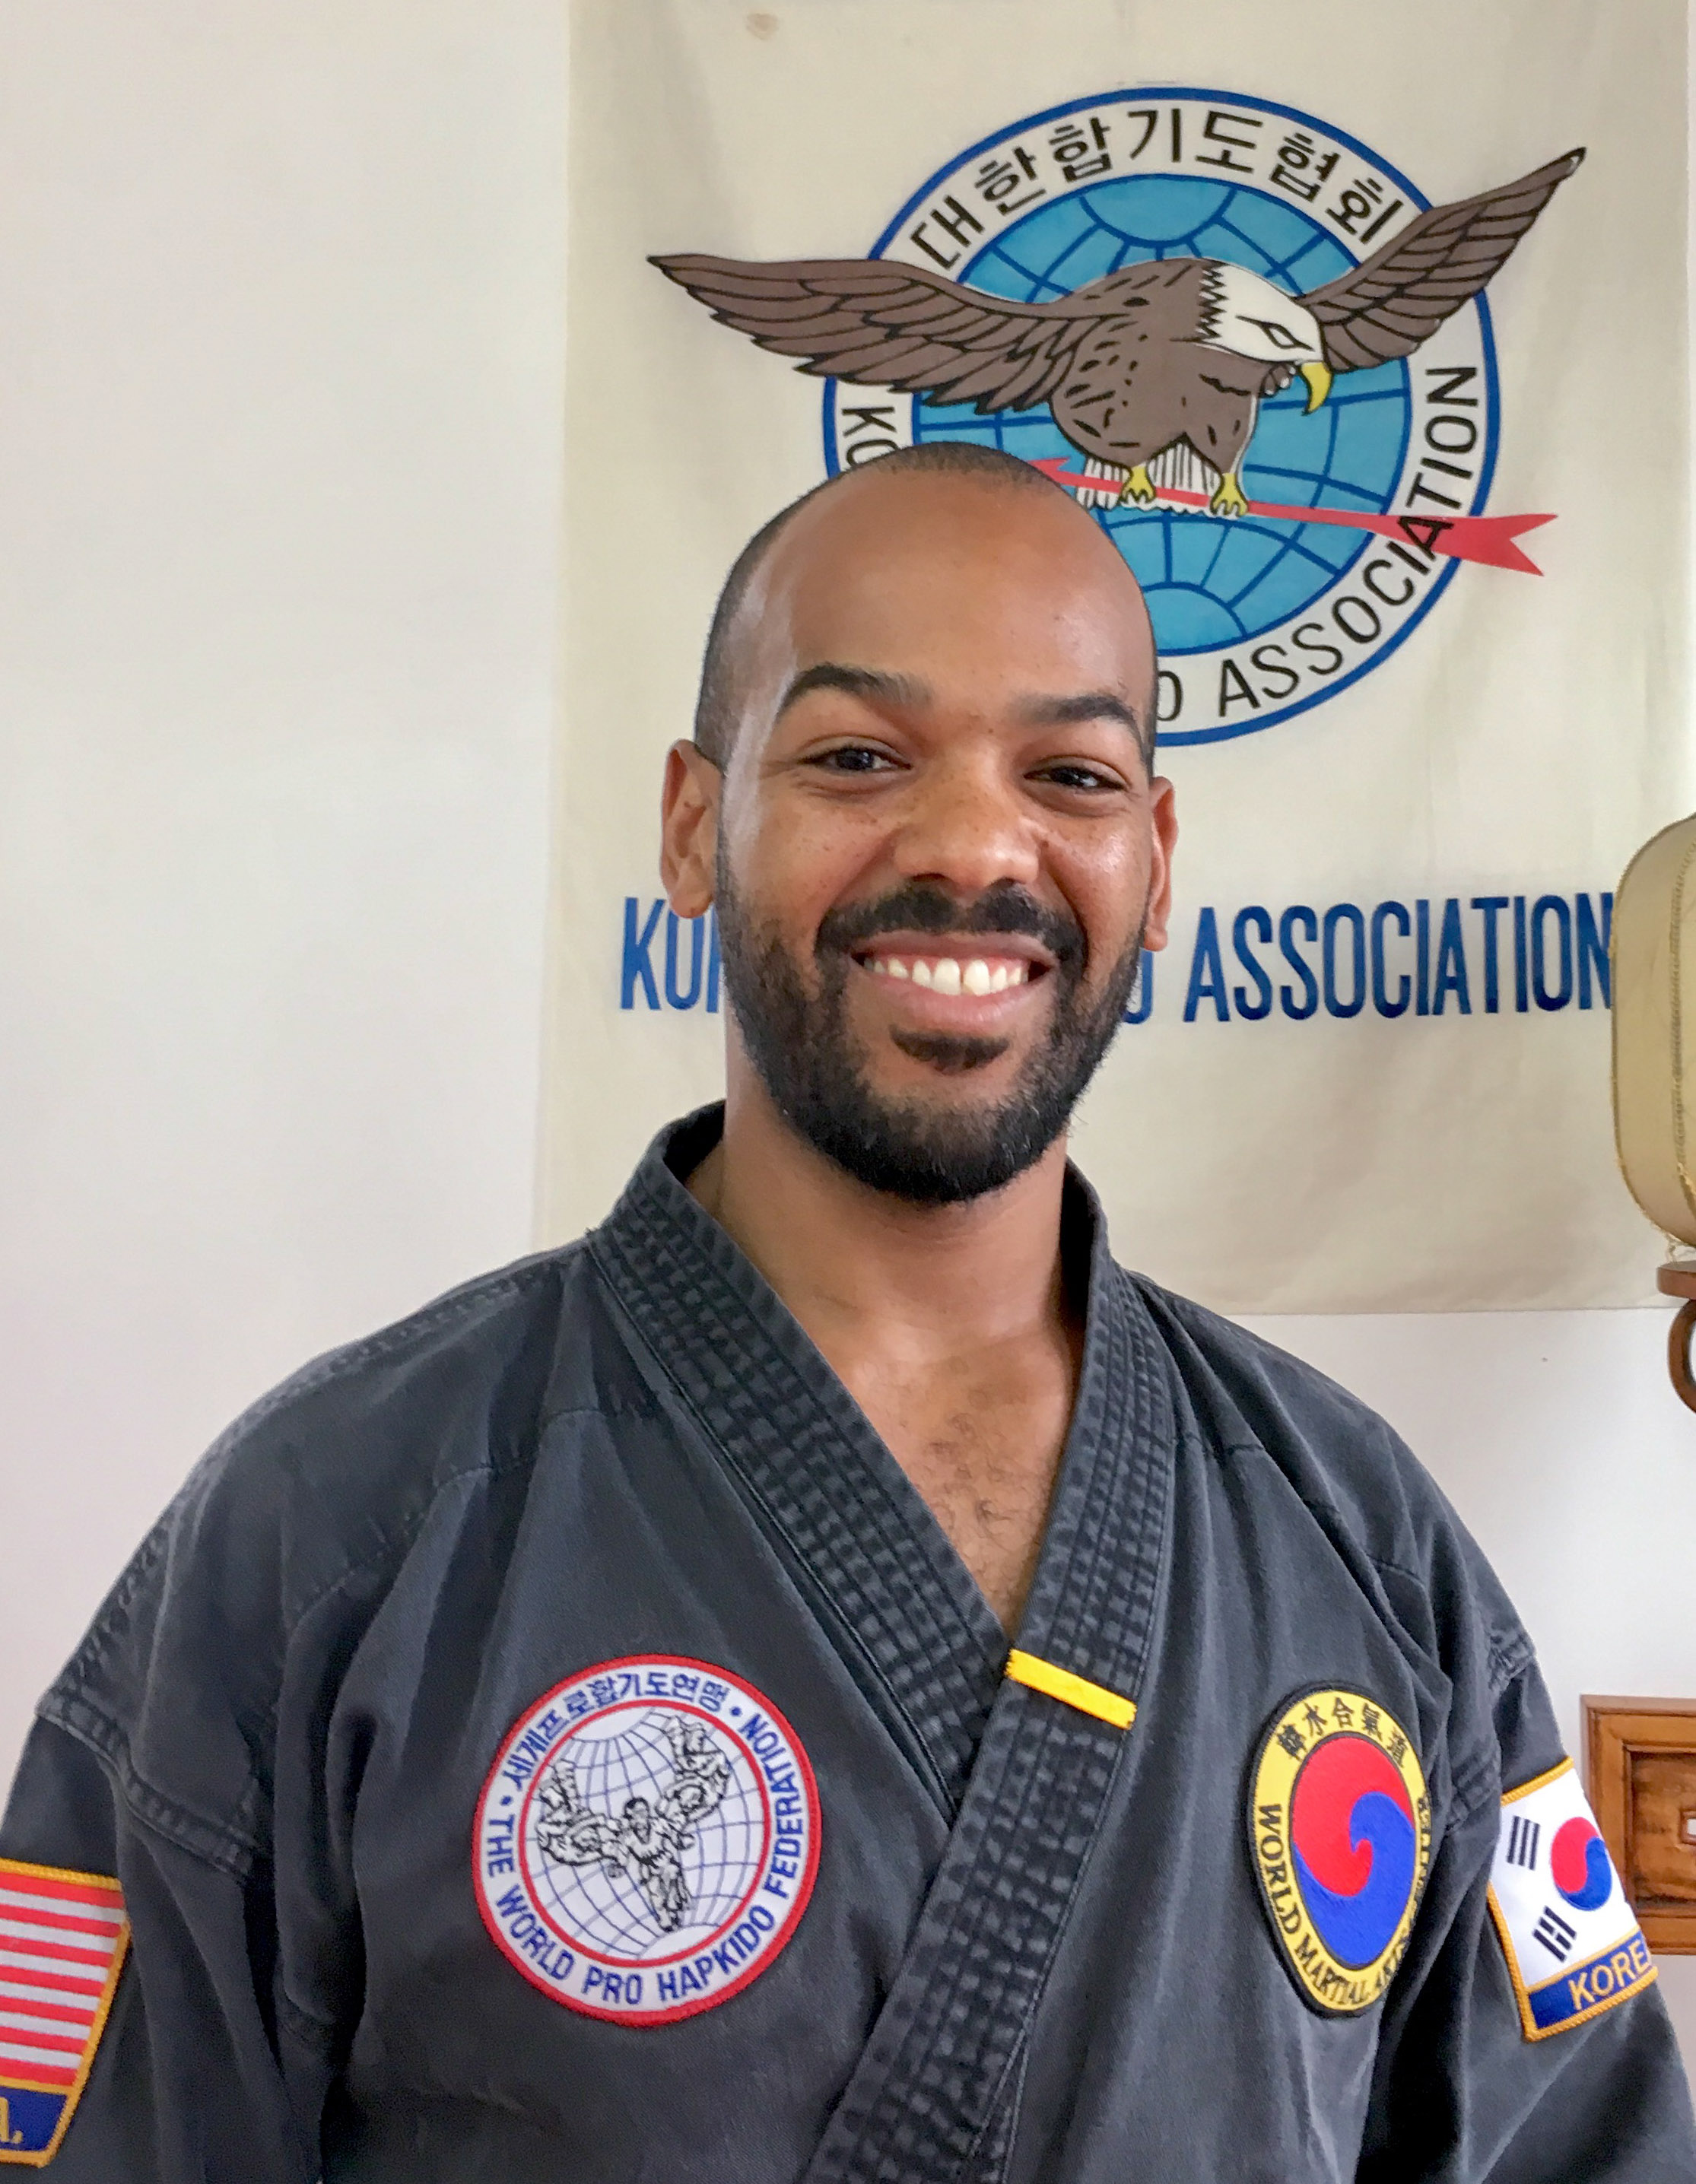 Certified Instructor Jacques Philipe   Piverger  began studying martial arts when he was 5, and earned his black belt in HapKiDo from Sabumnim David Herbert in 2015. His children are also practitioners of hapKiDo. Jacques-Philippe has maintained a daily transcendental meditation practice for many years, which he credits for an increasing sense of peace and oneness. He is an entrepreneur having founded or co-founded a number of for profit and for purpose enterprises. He received his undergraduate from Georgetown University and an MBA from Dartmouth. He was a Term Member of the Council on Foreign Relations and he's been designated a Young Global Leader of the World Economic Forum.